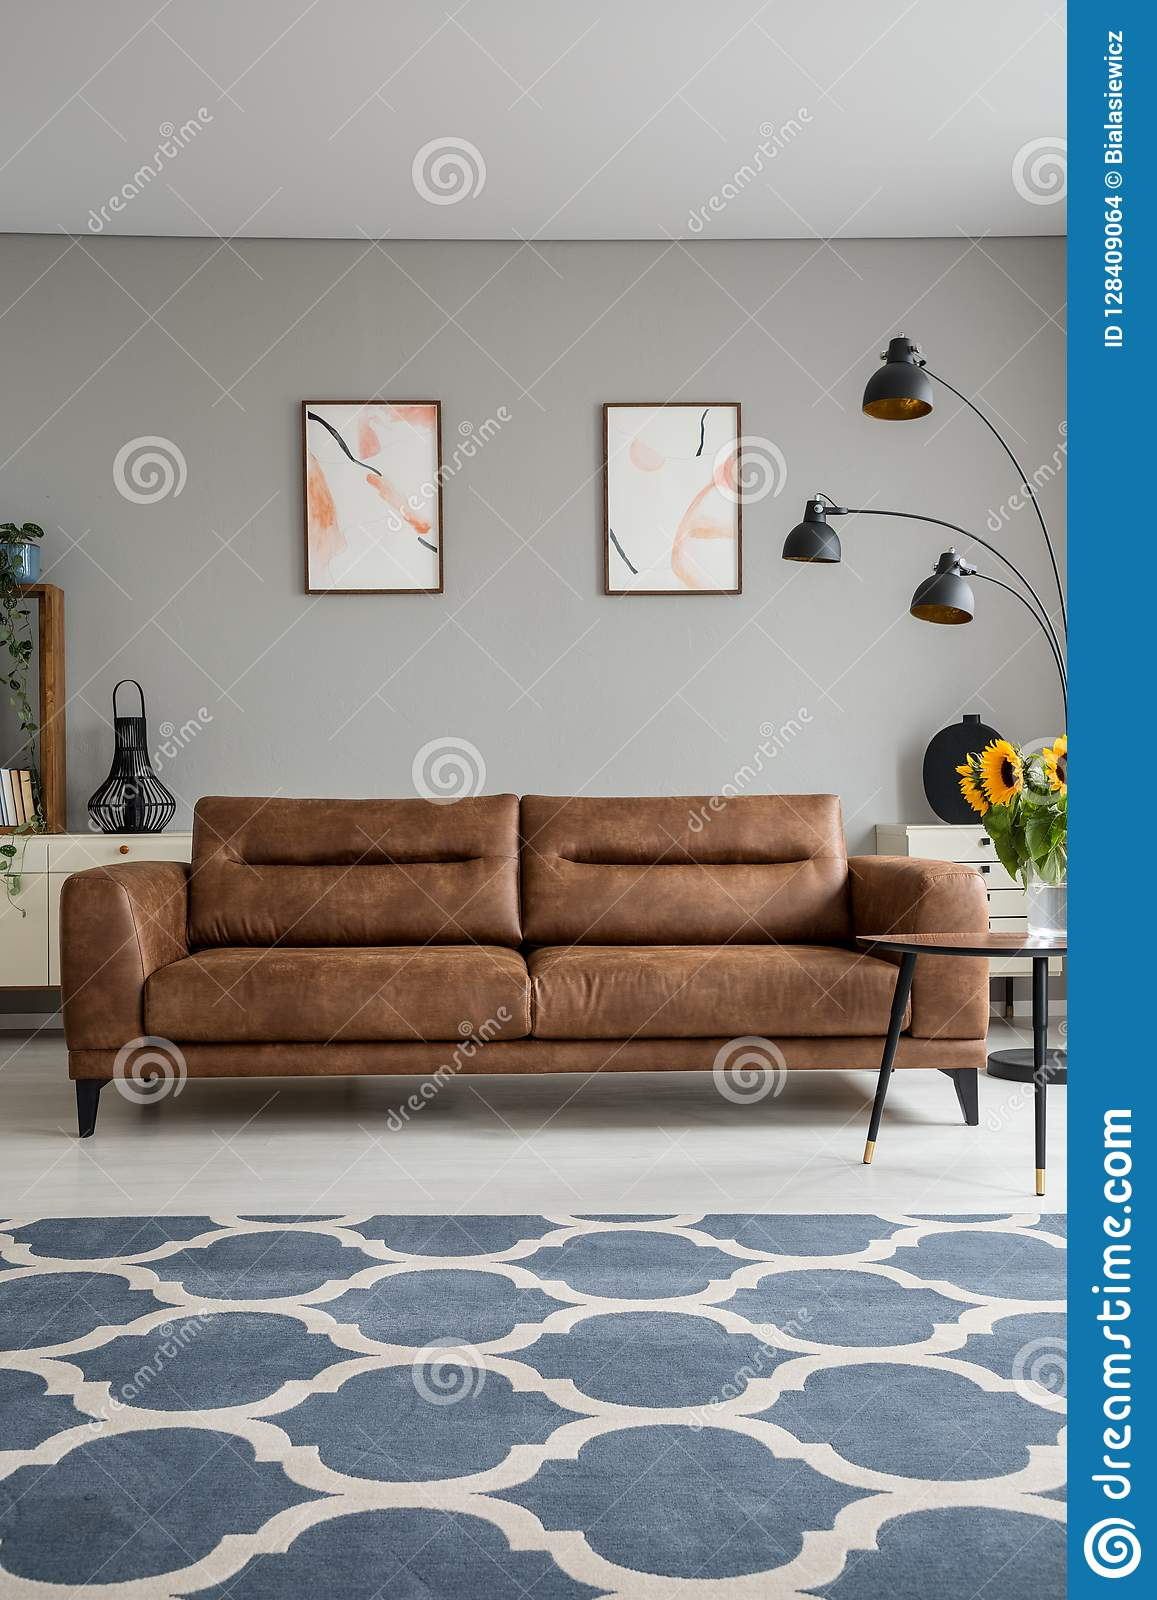 Wondrous Blue Patterned Carpet And Leather Sofa In Grey Living Room Pdpeps Interior Chair Design Pdpepsorg